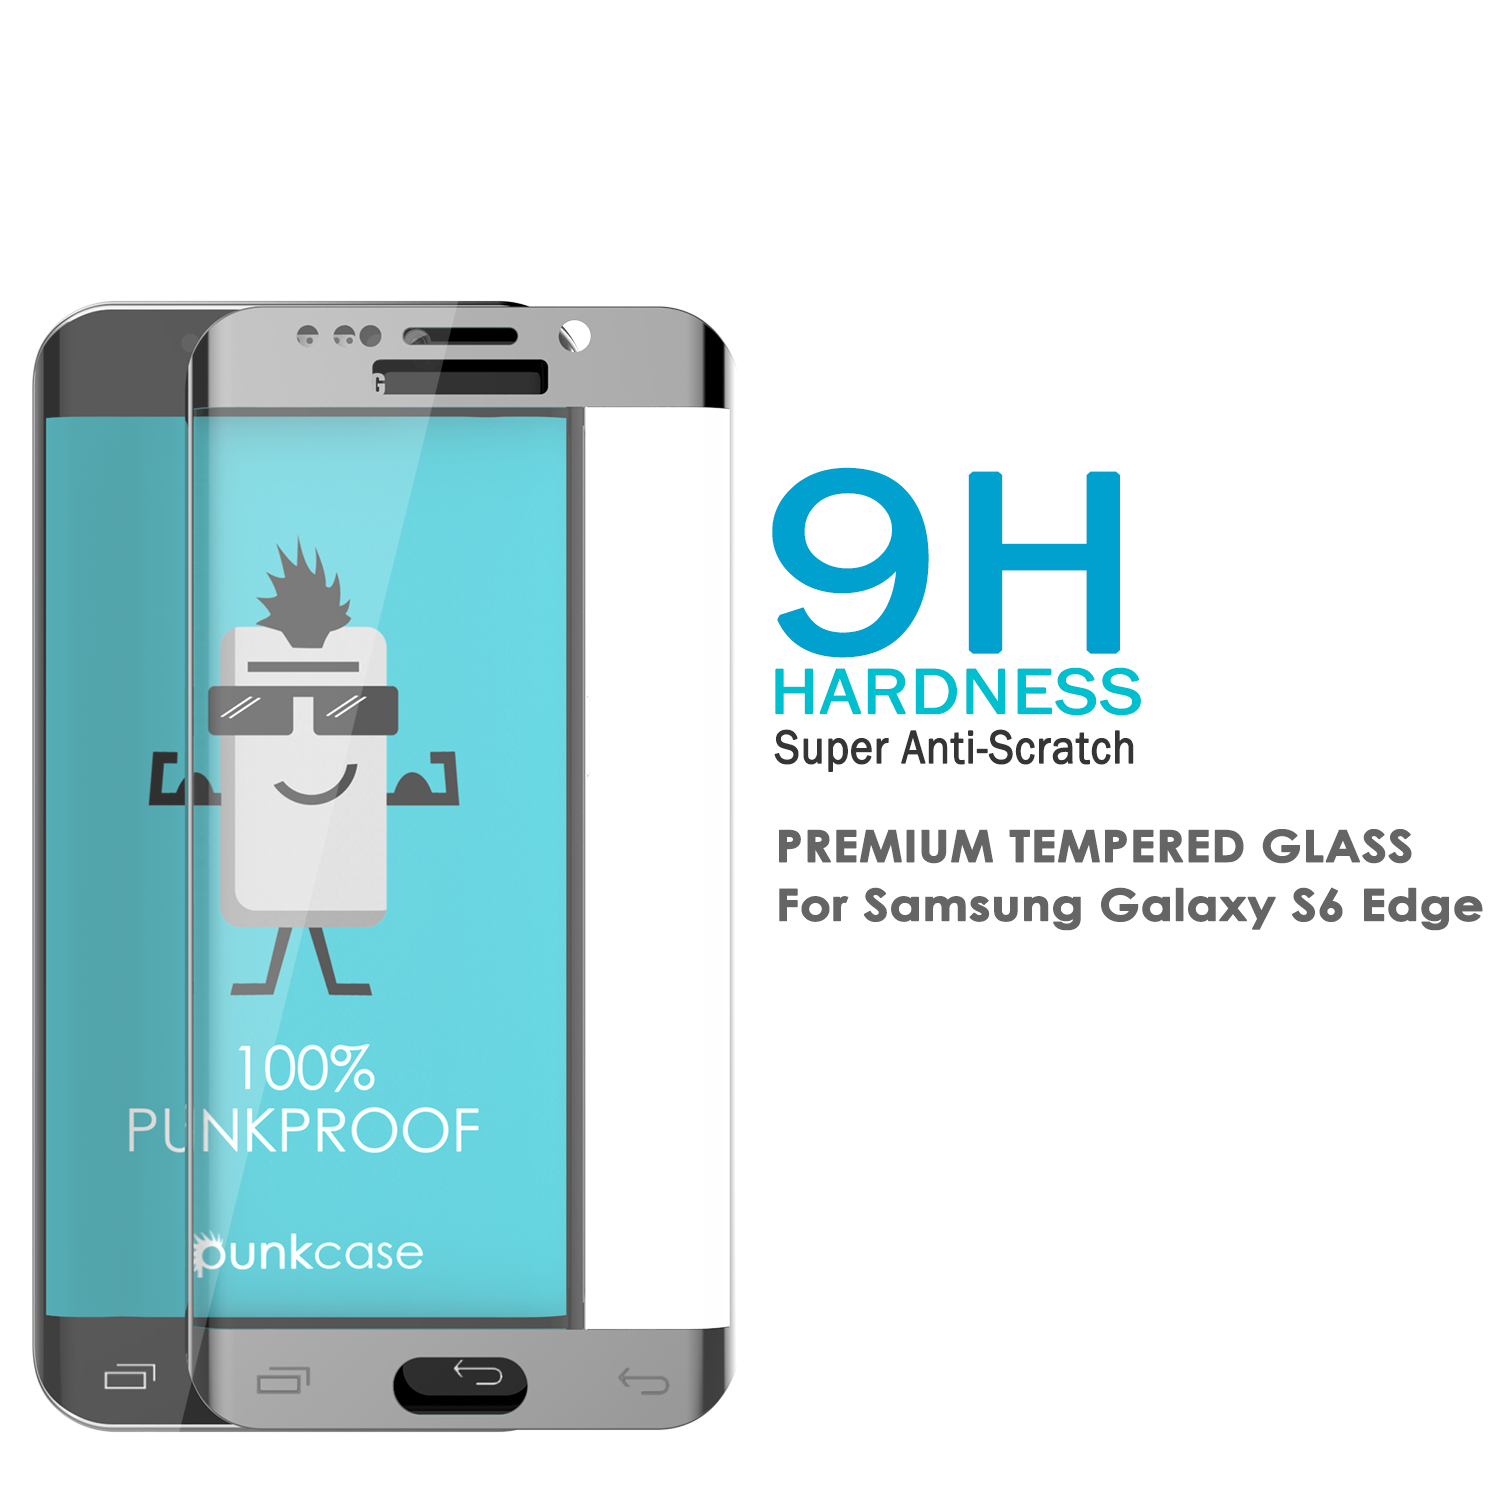 Galaxy S6 Edge Silver Punkcase Glass SHIELD Tempered Glass Screen Protector 0.33mm Thick 9H Glass